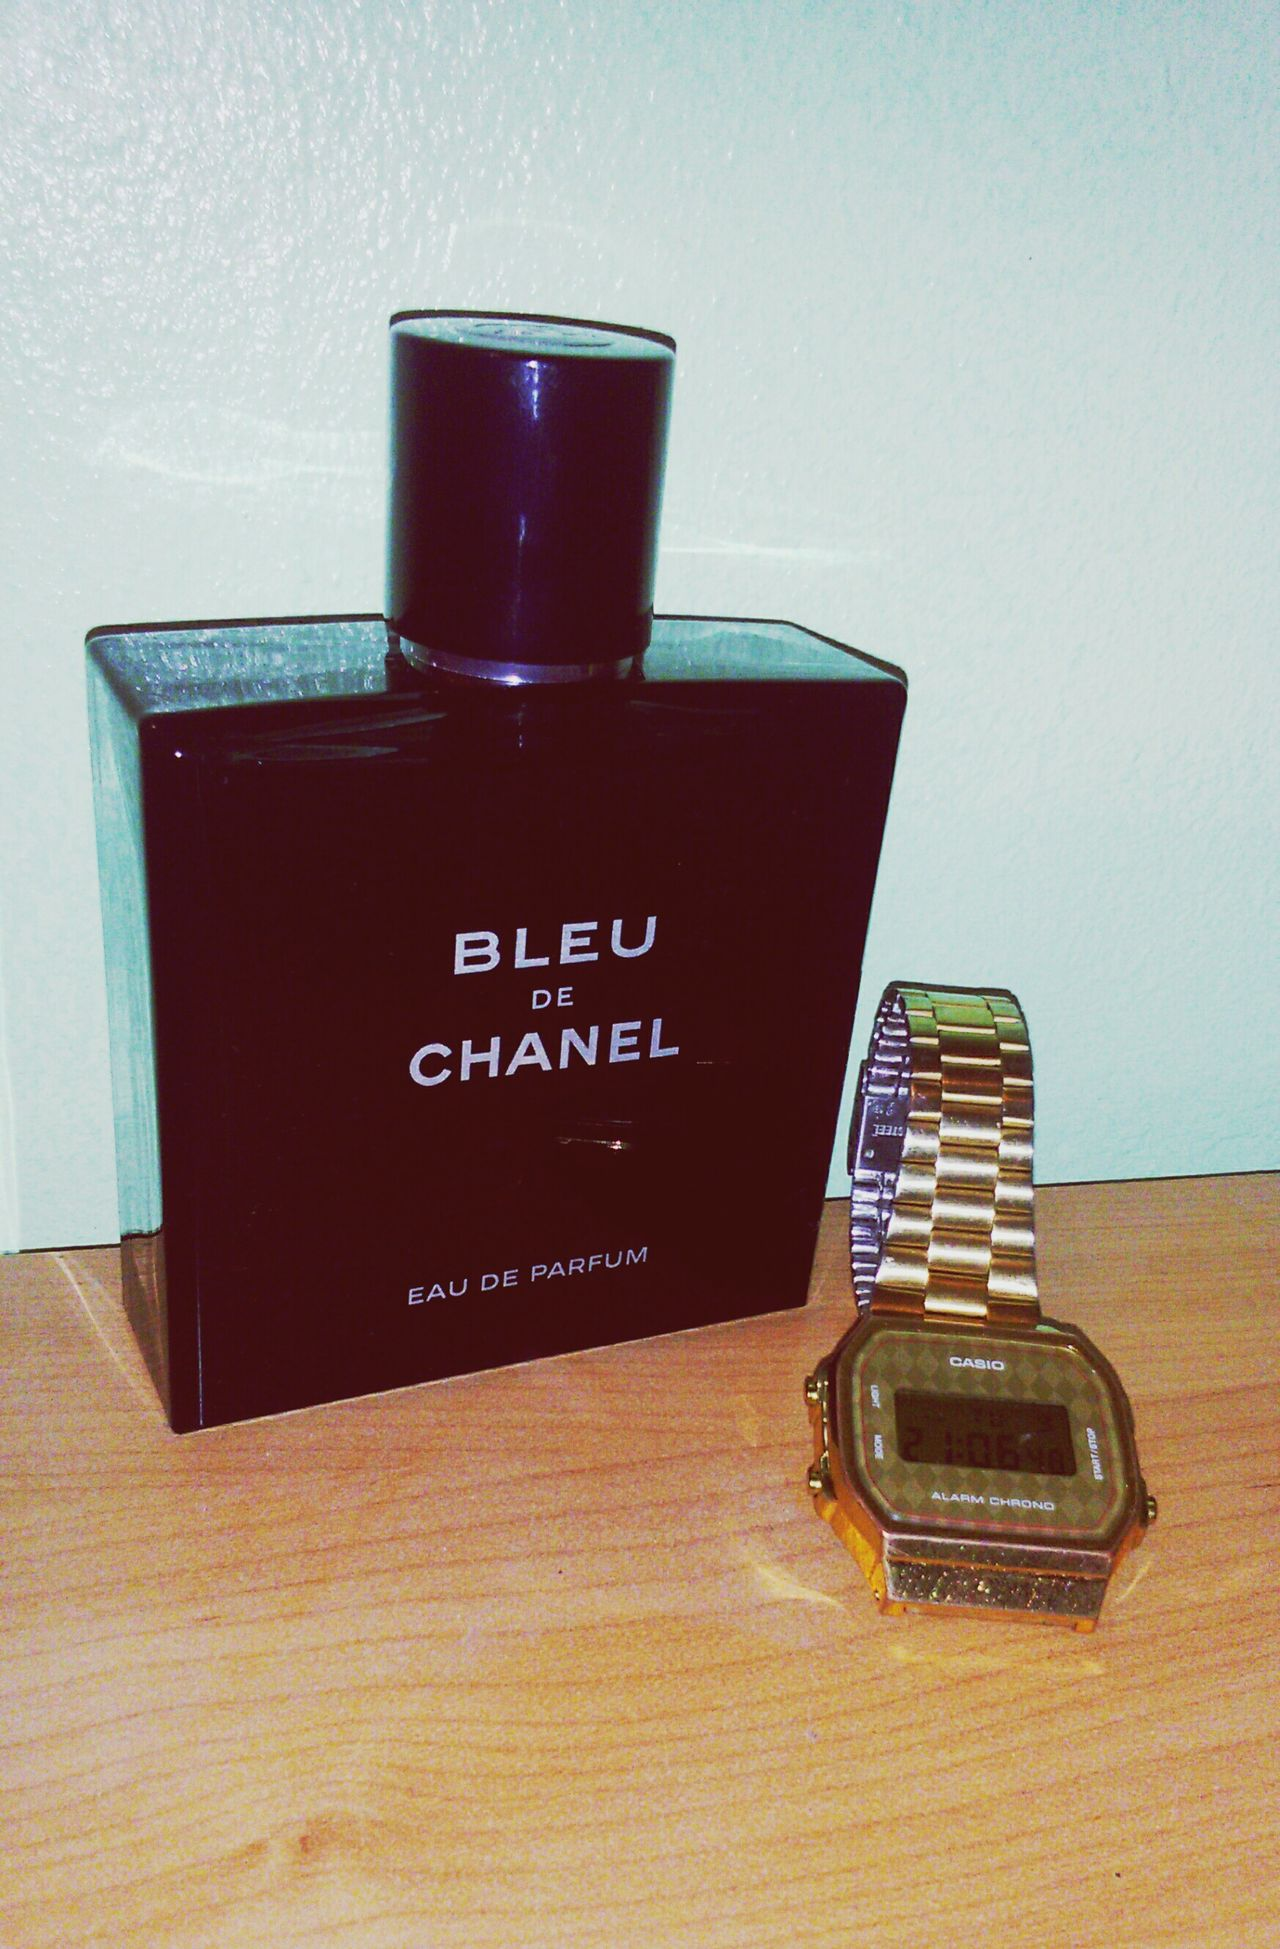 Table Object Parfume Parfum Casio Watch Casio Chanel Bleu De Chanel Love Lovely Watch Beauty